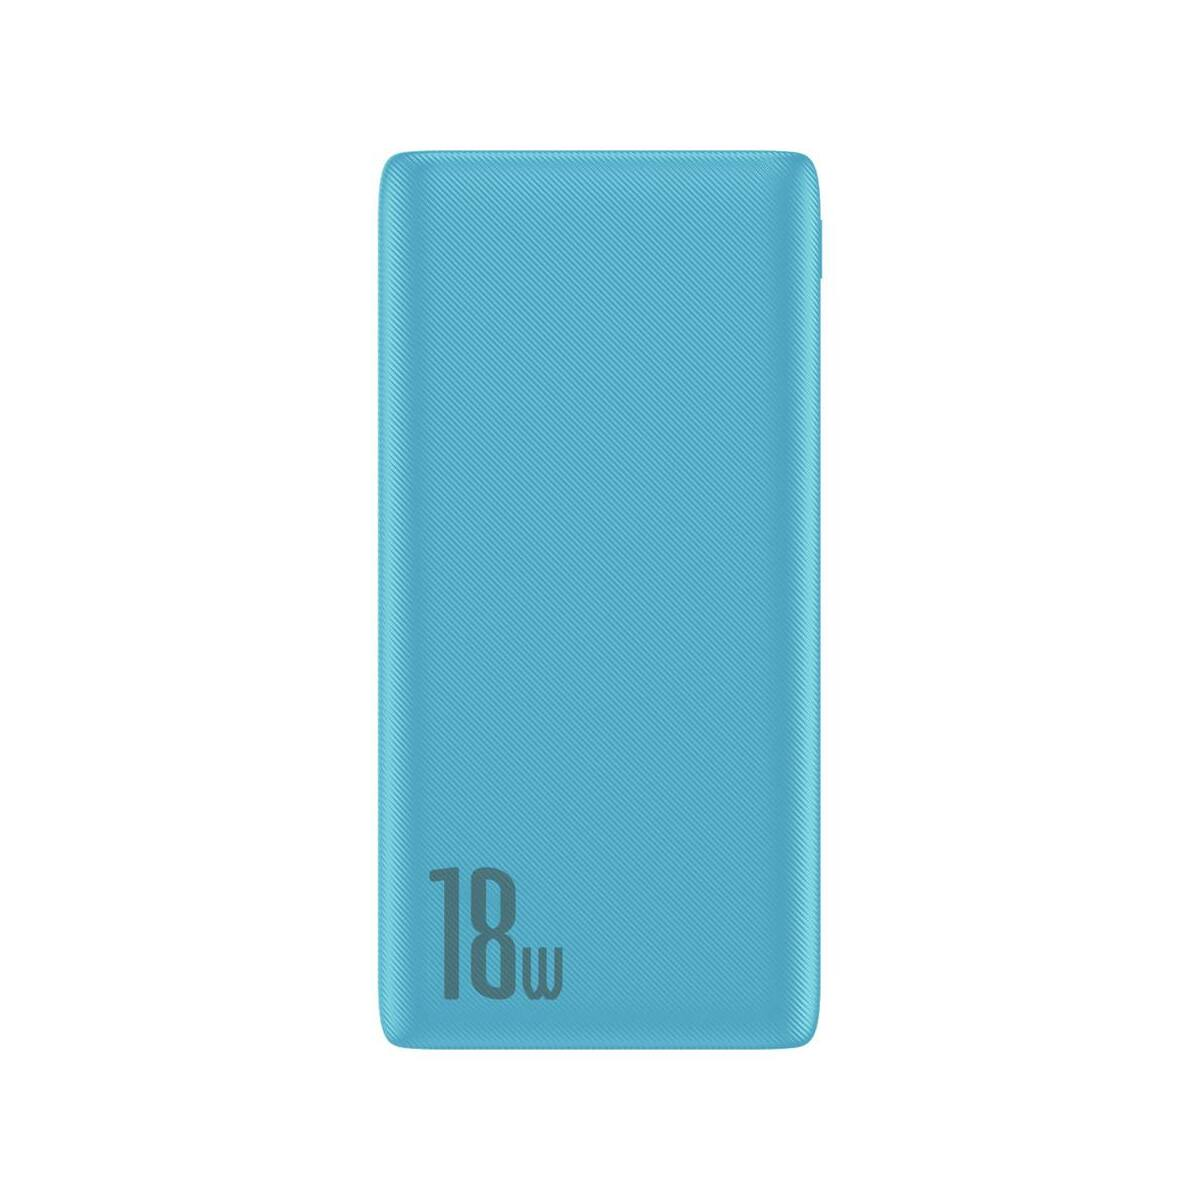 Baseus Power Bank Bipow gyors töltős Power Bank PD+QC kimenettel 3A 10000 mAh 18W, kék (PPDML-03)